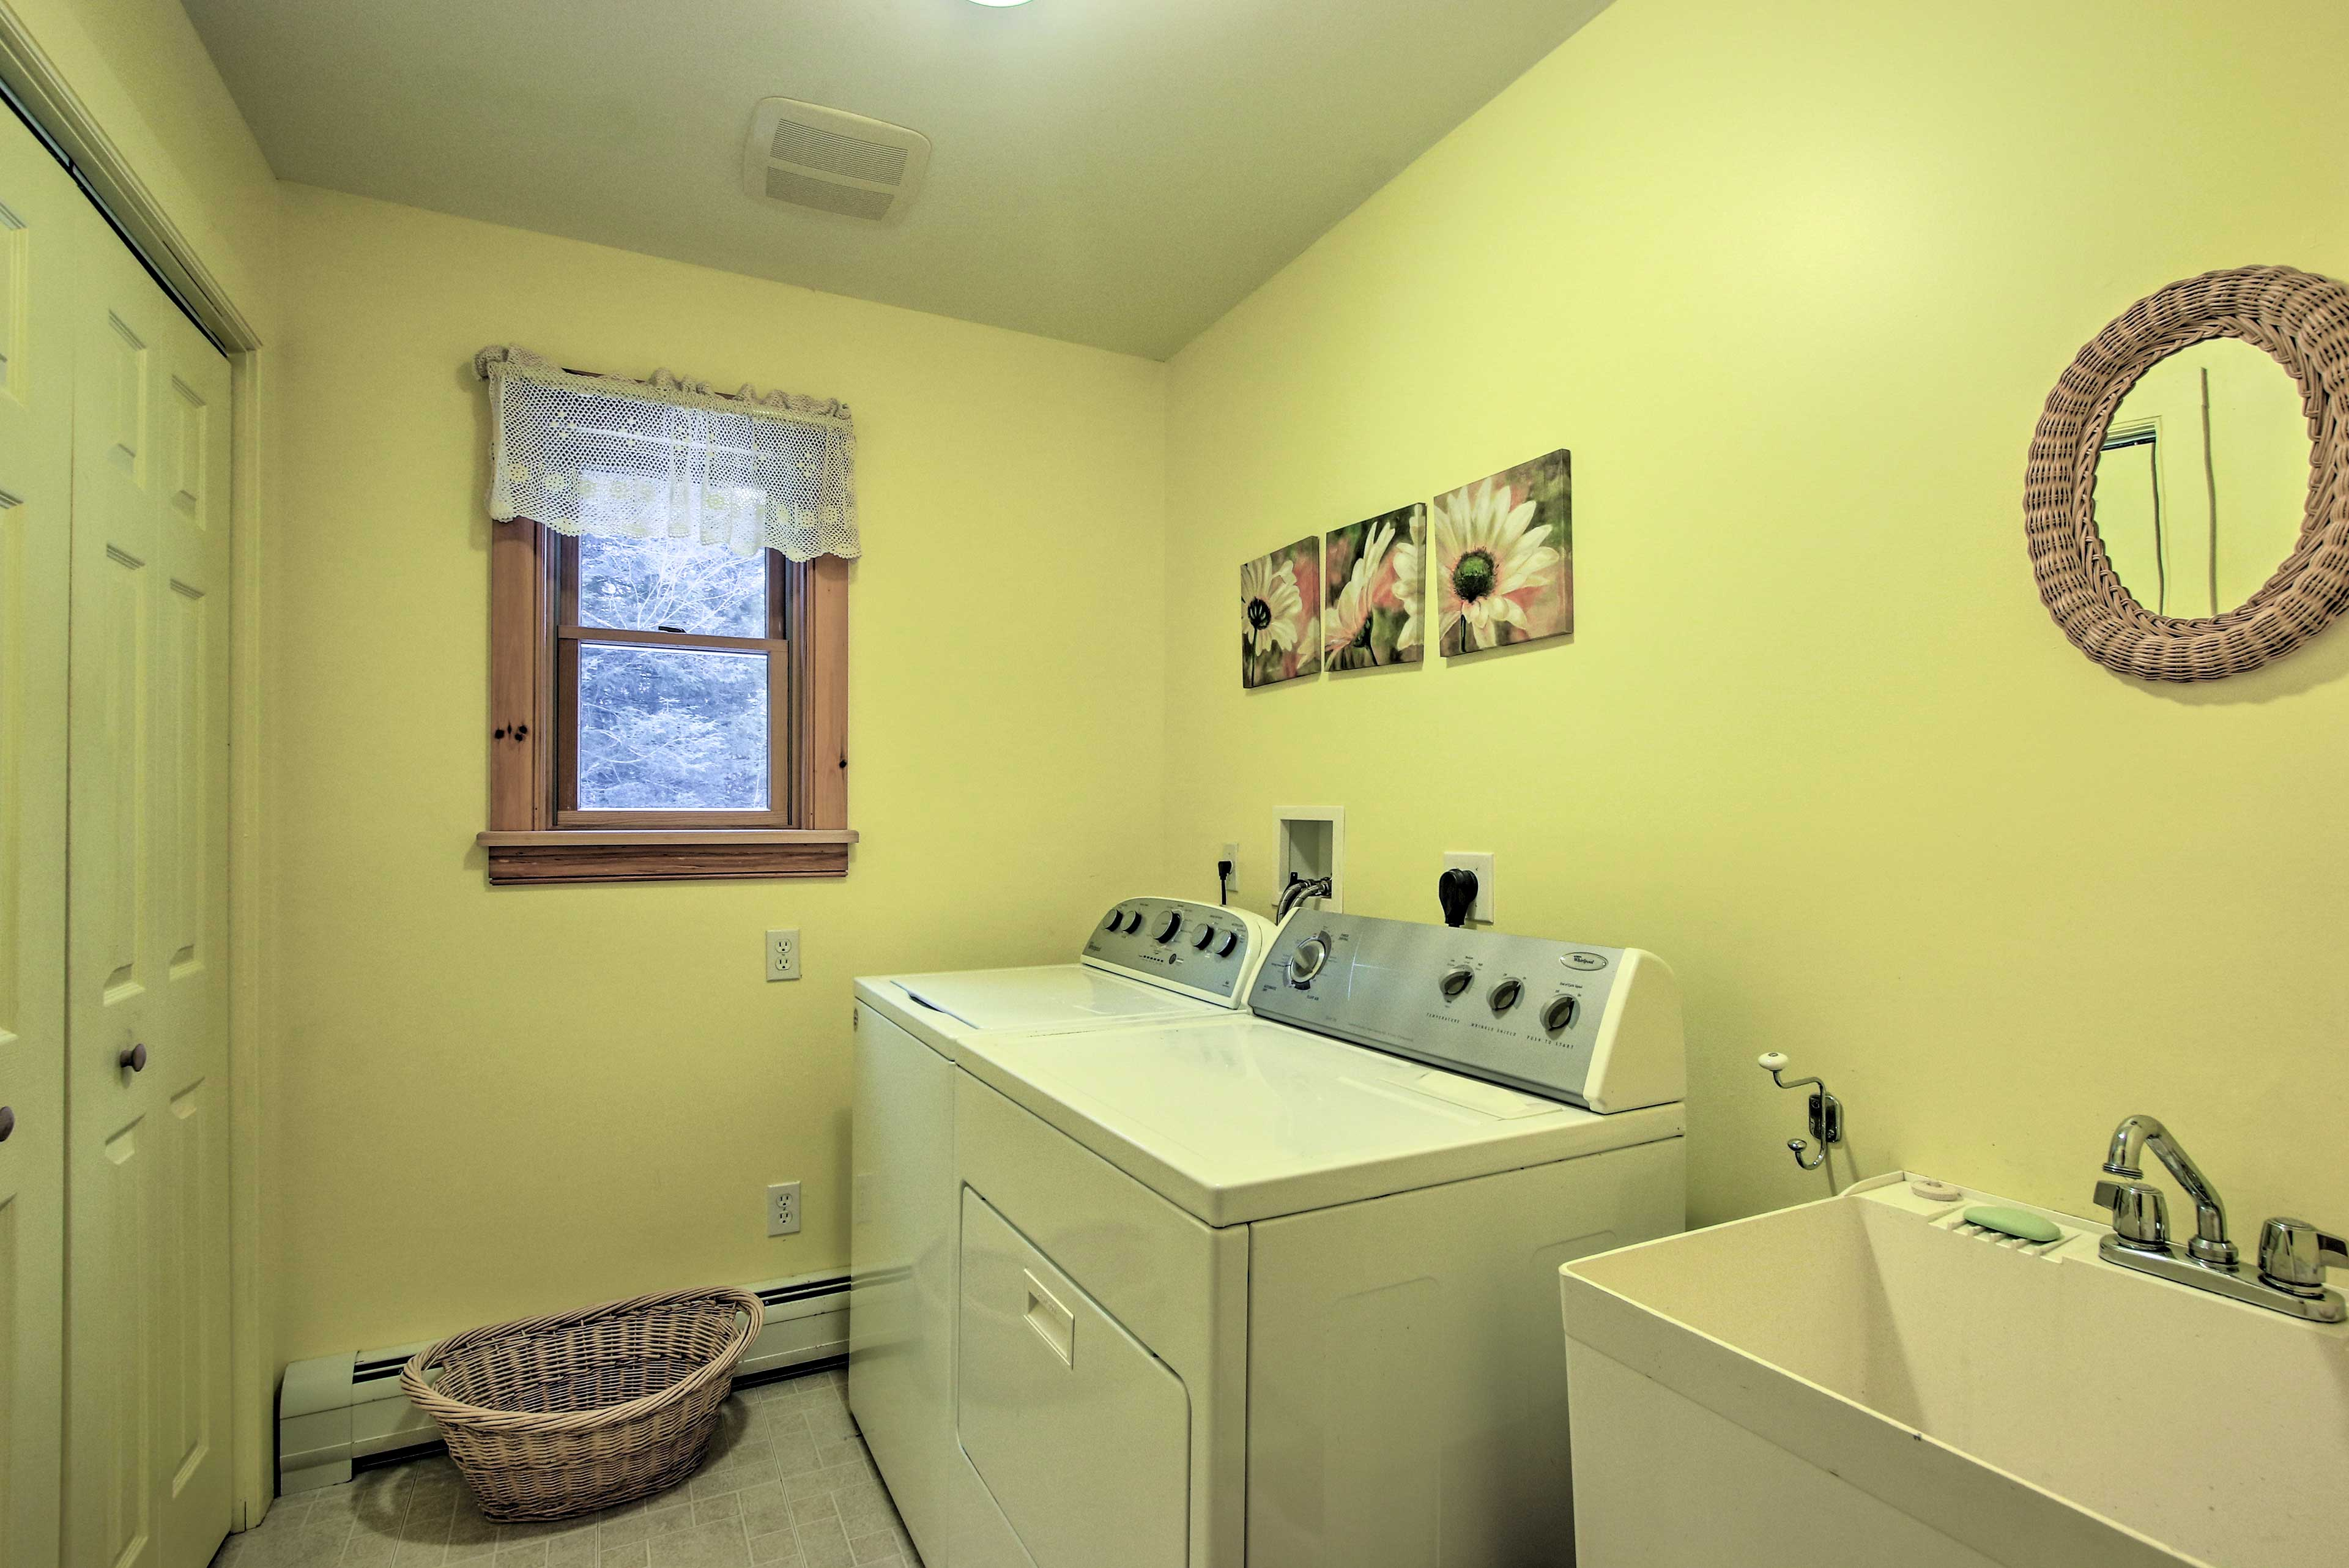 Keep your clothes nice and clean with the washer and dryer.